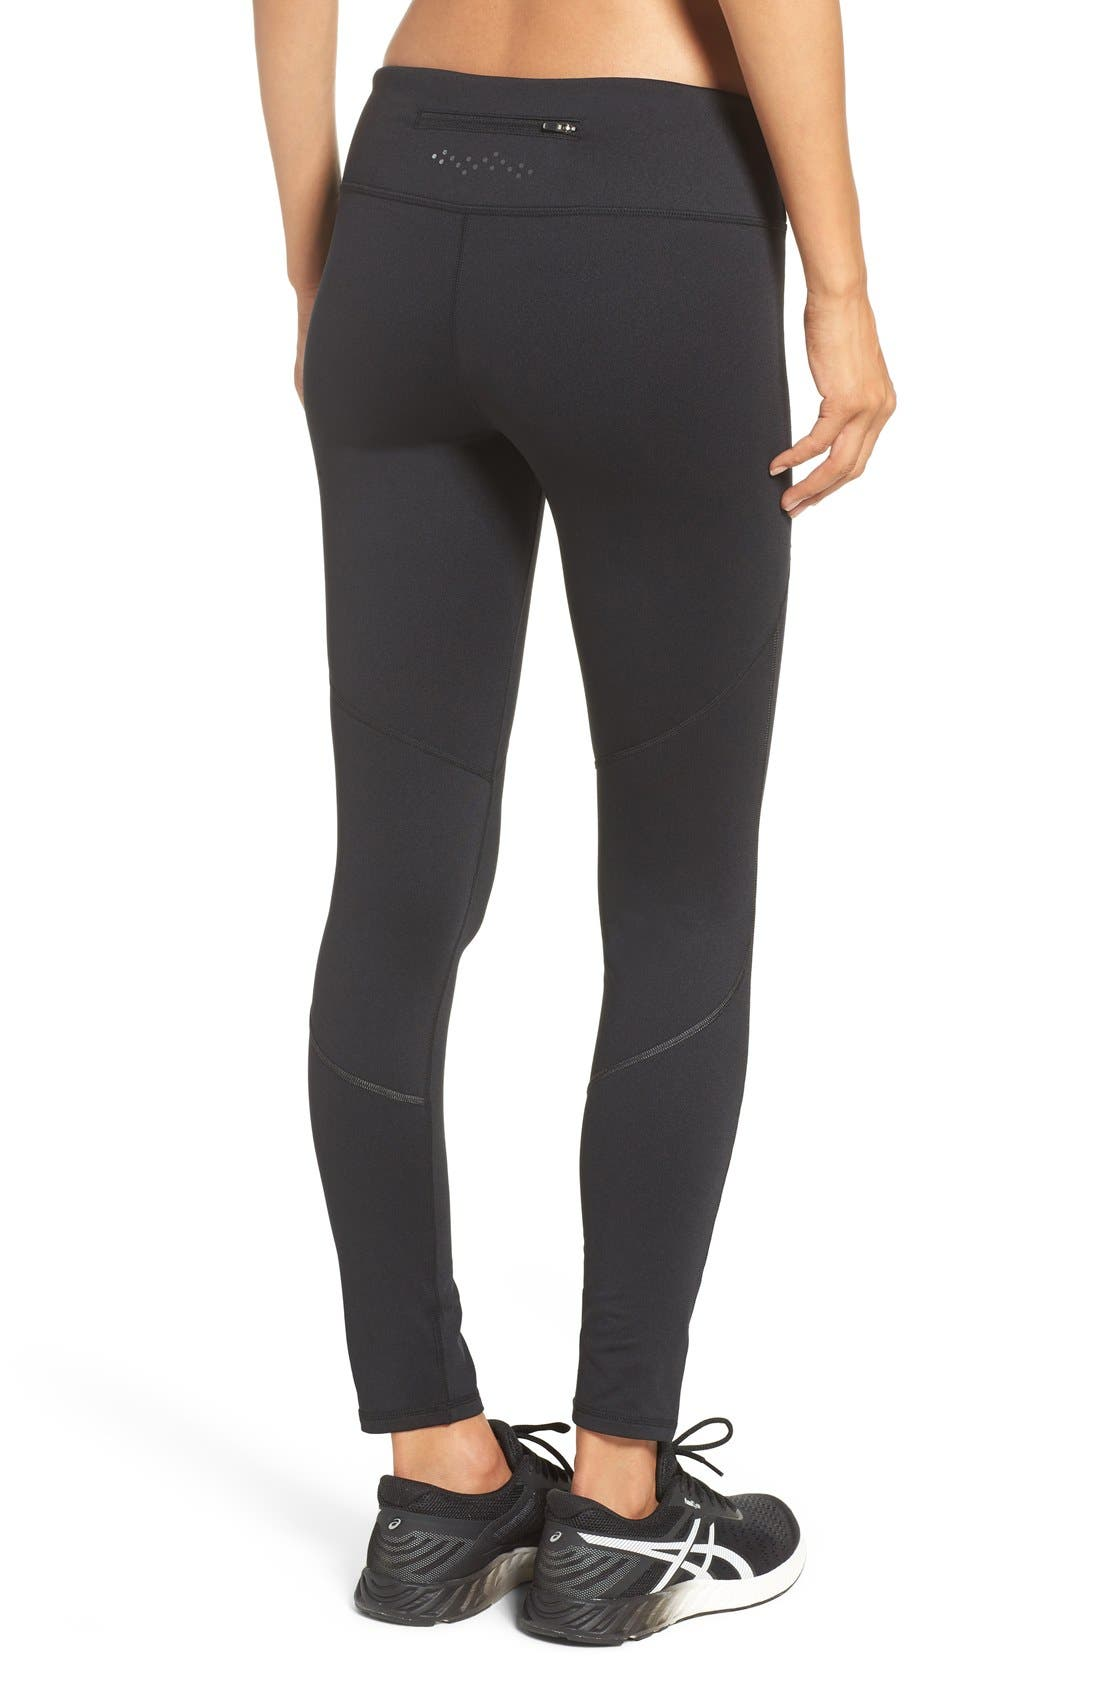 Heat It Up Running Tights,                             Main thumbnail 1, color,